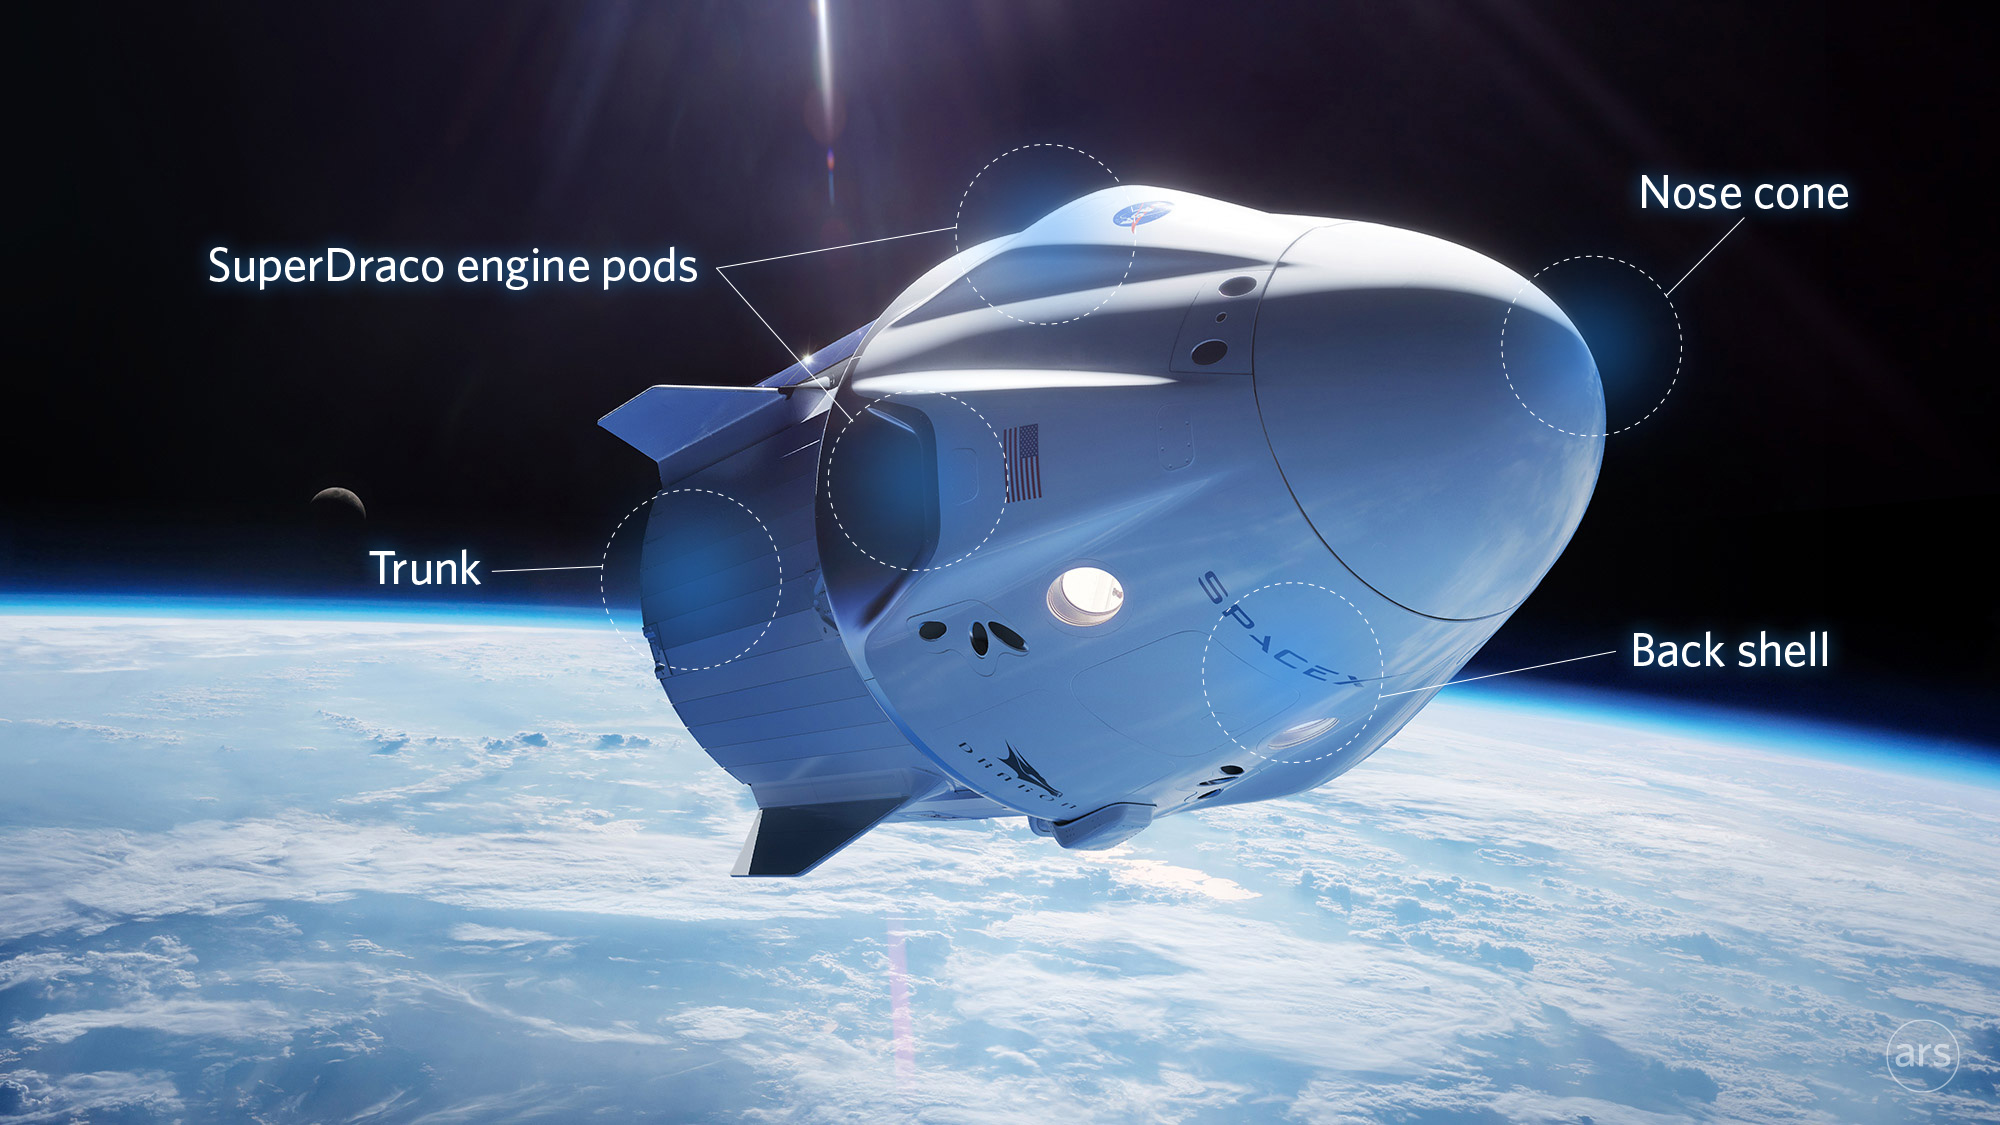 Graphic showing Dragon in space, both the capsule and trunk. The trunk will be jettisoned before reentry, revealing a heat shield.